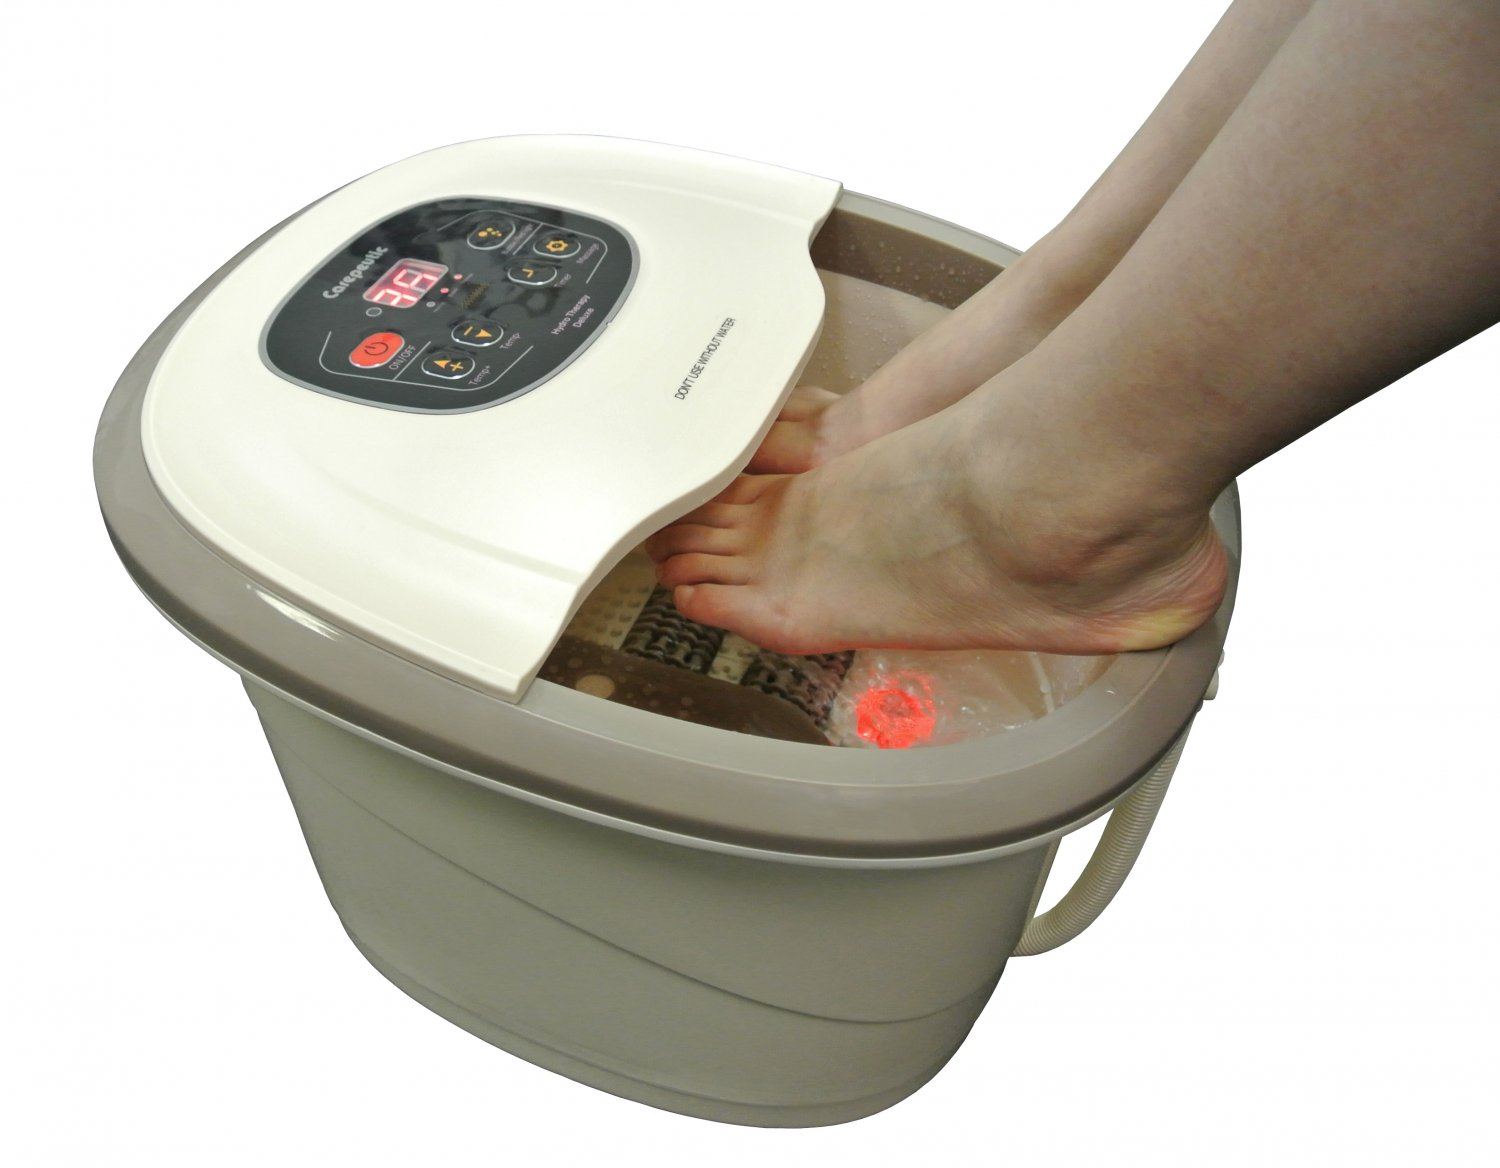 carepeutic motorized hydro therapy foot and leg spa bath